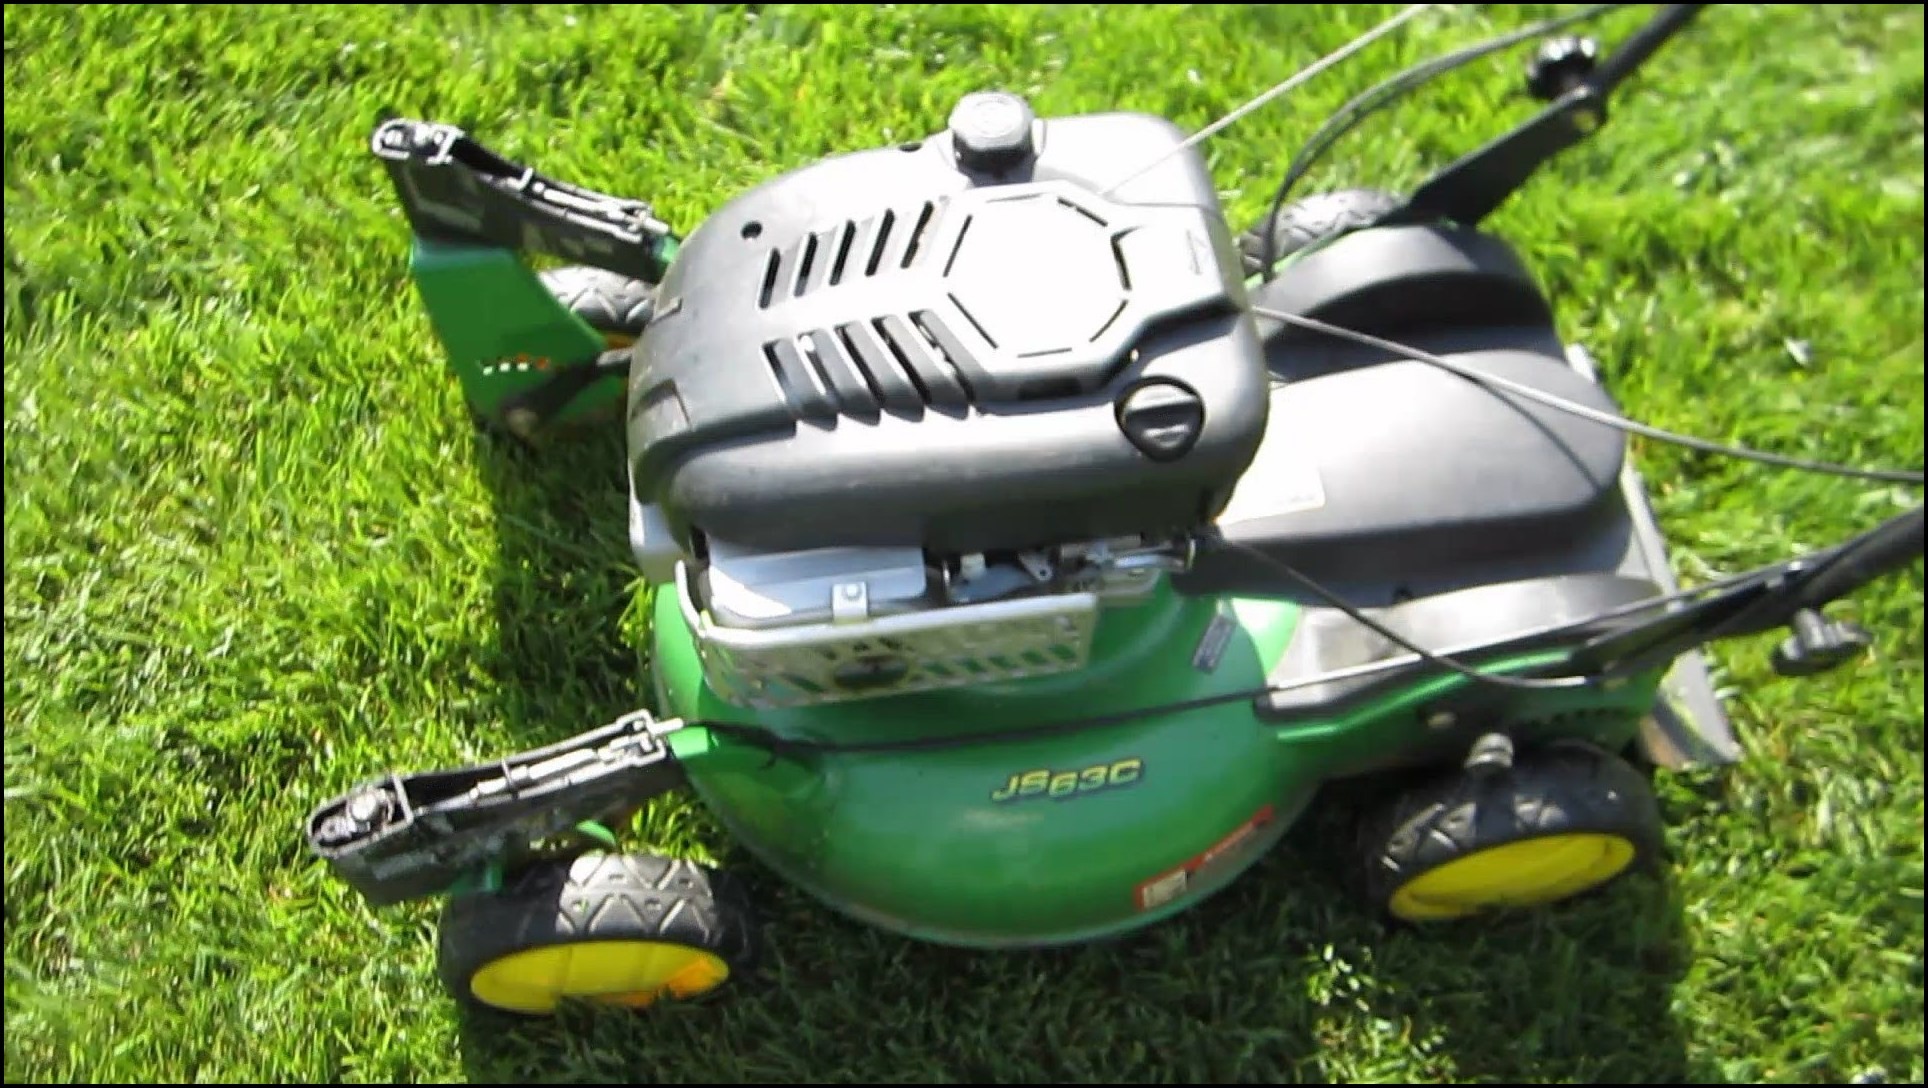 John Deere Self Propelled Lawn Mowers